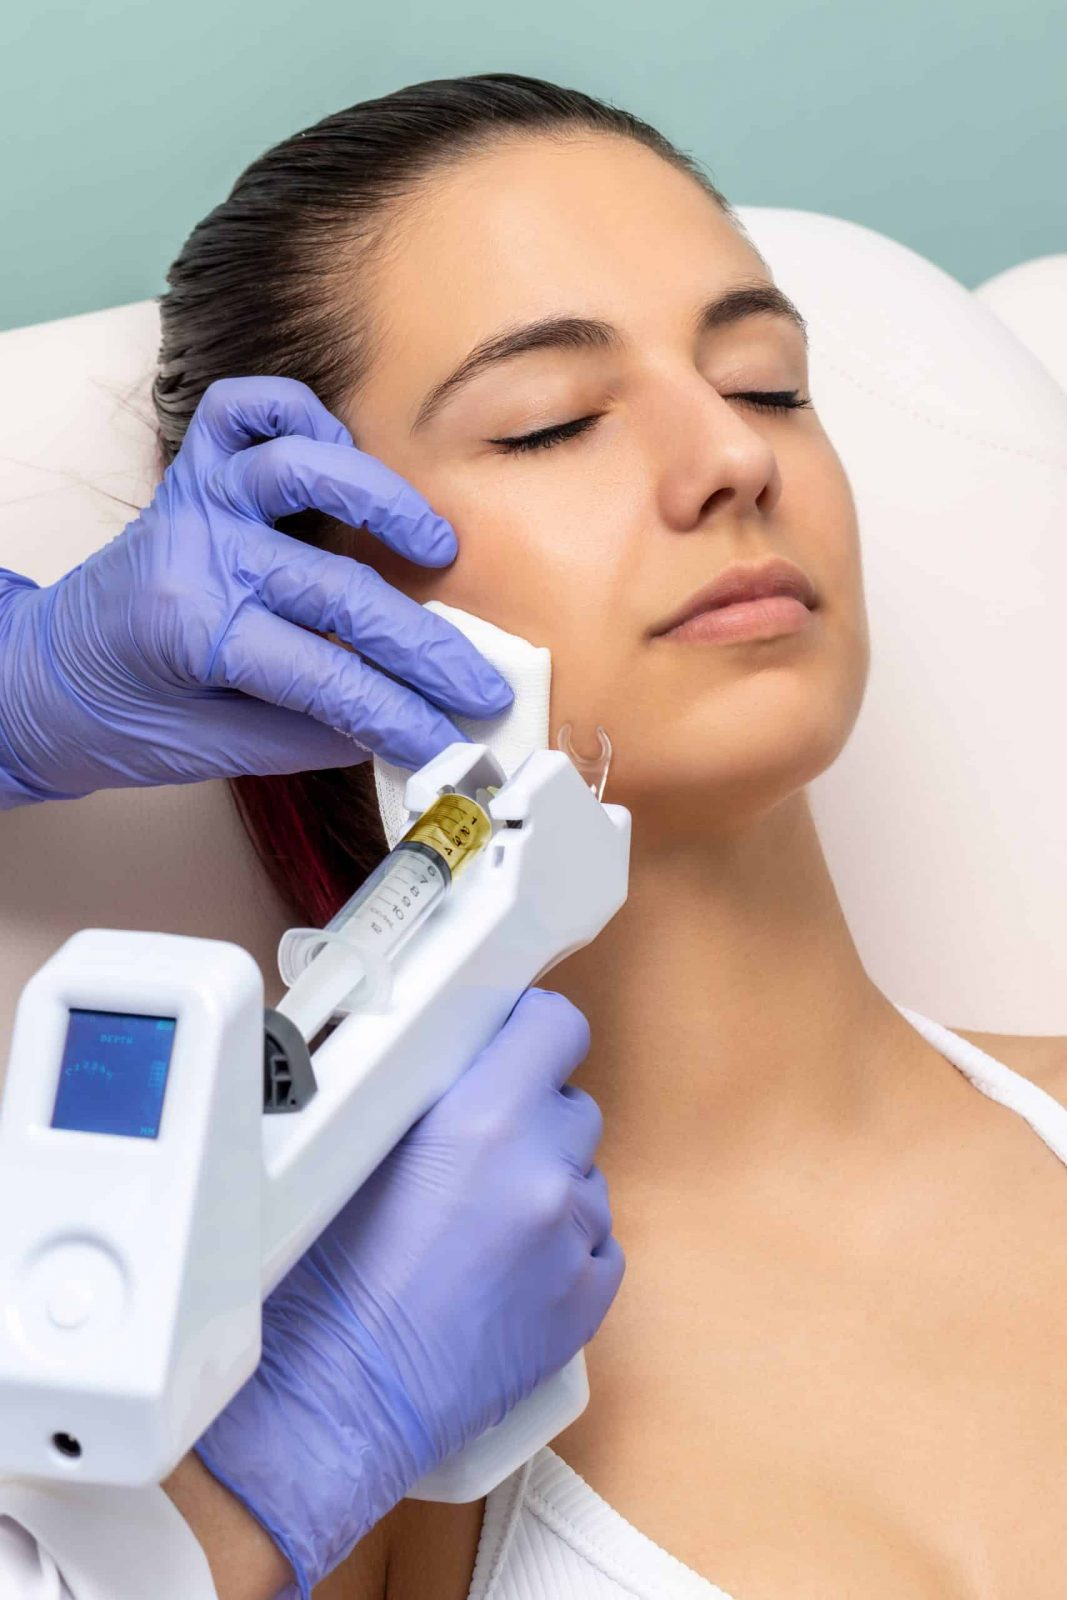 meso therapy with the best nurse and aestheticians in london help treat skin concerns hair rejuvenation